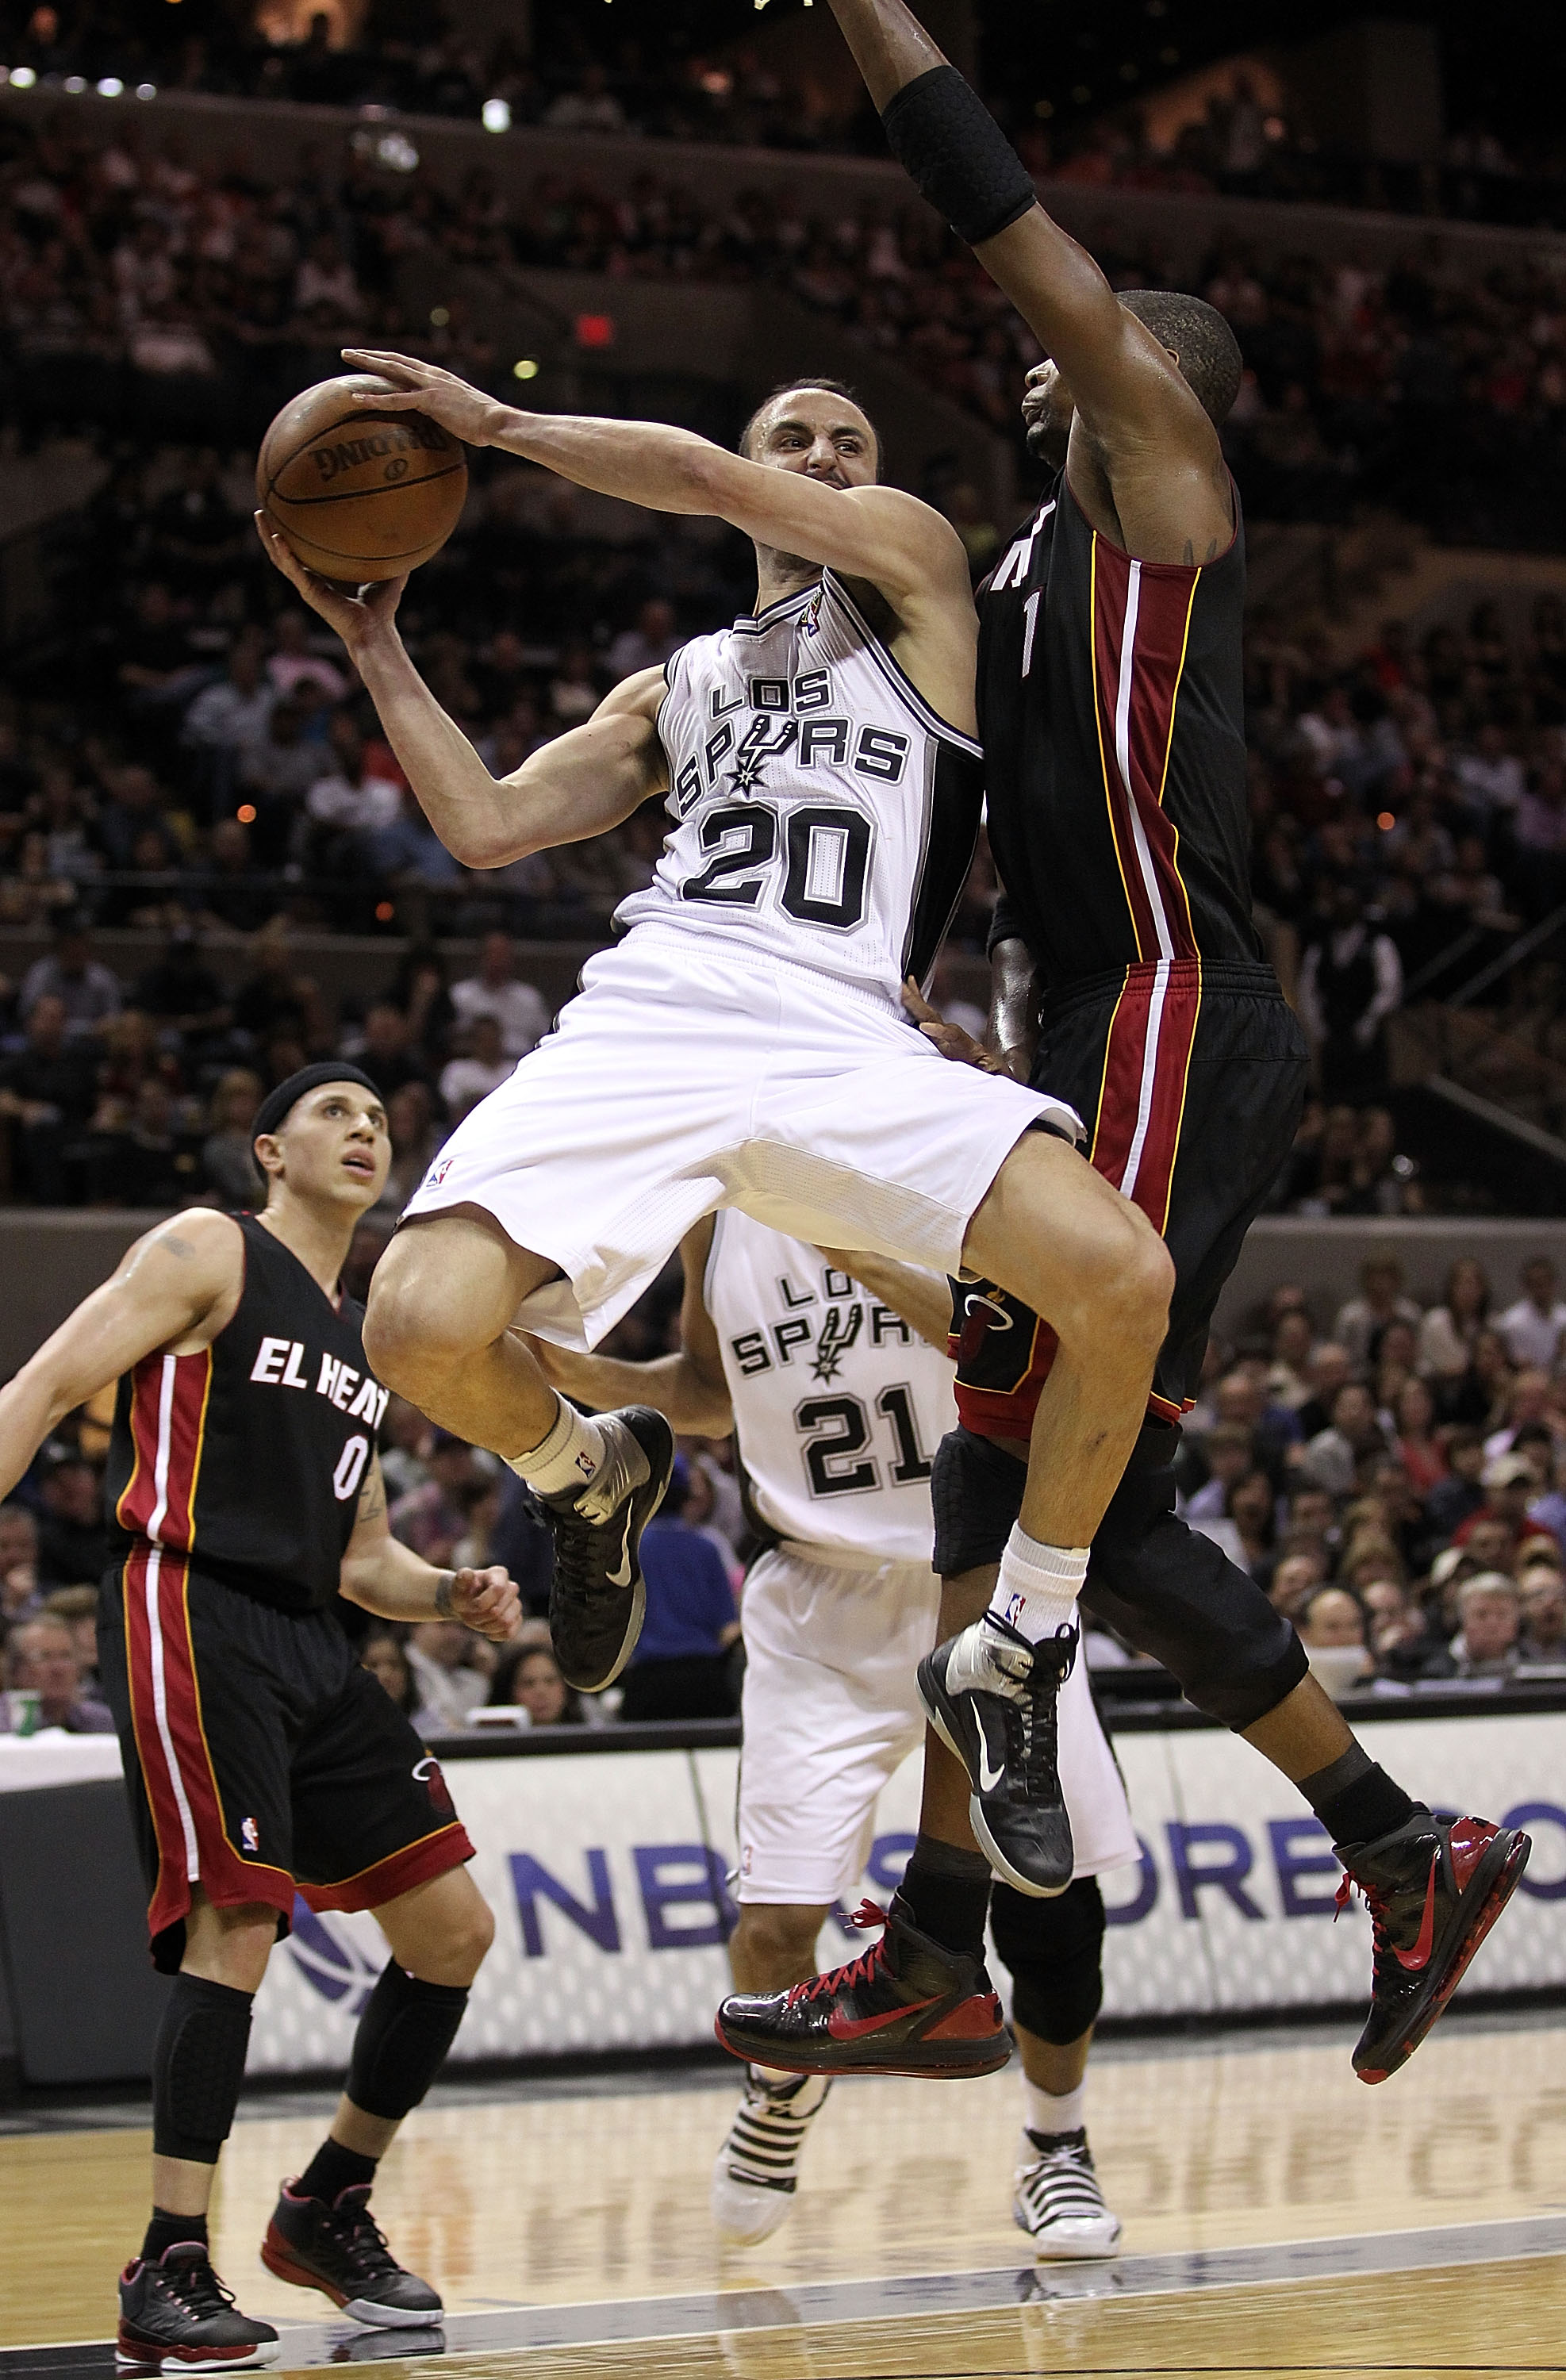 SAN ANTONIO, TX - MARCH 04:  Guard Manu Ginobili #20 of the San Antonio Spurs drives the lane against Chris Bosh #1 of the Miami Heat at AT&T Center on March 4, 2011 in San Antonio, Texas.   NOTE TO USER: User expressly acknowledges and agrees that, by do